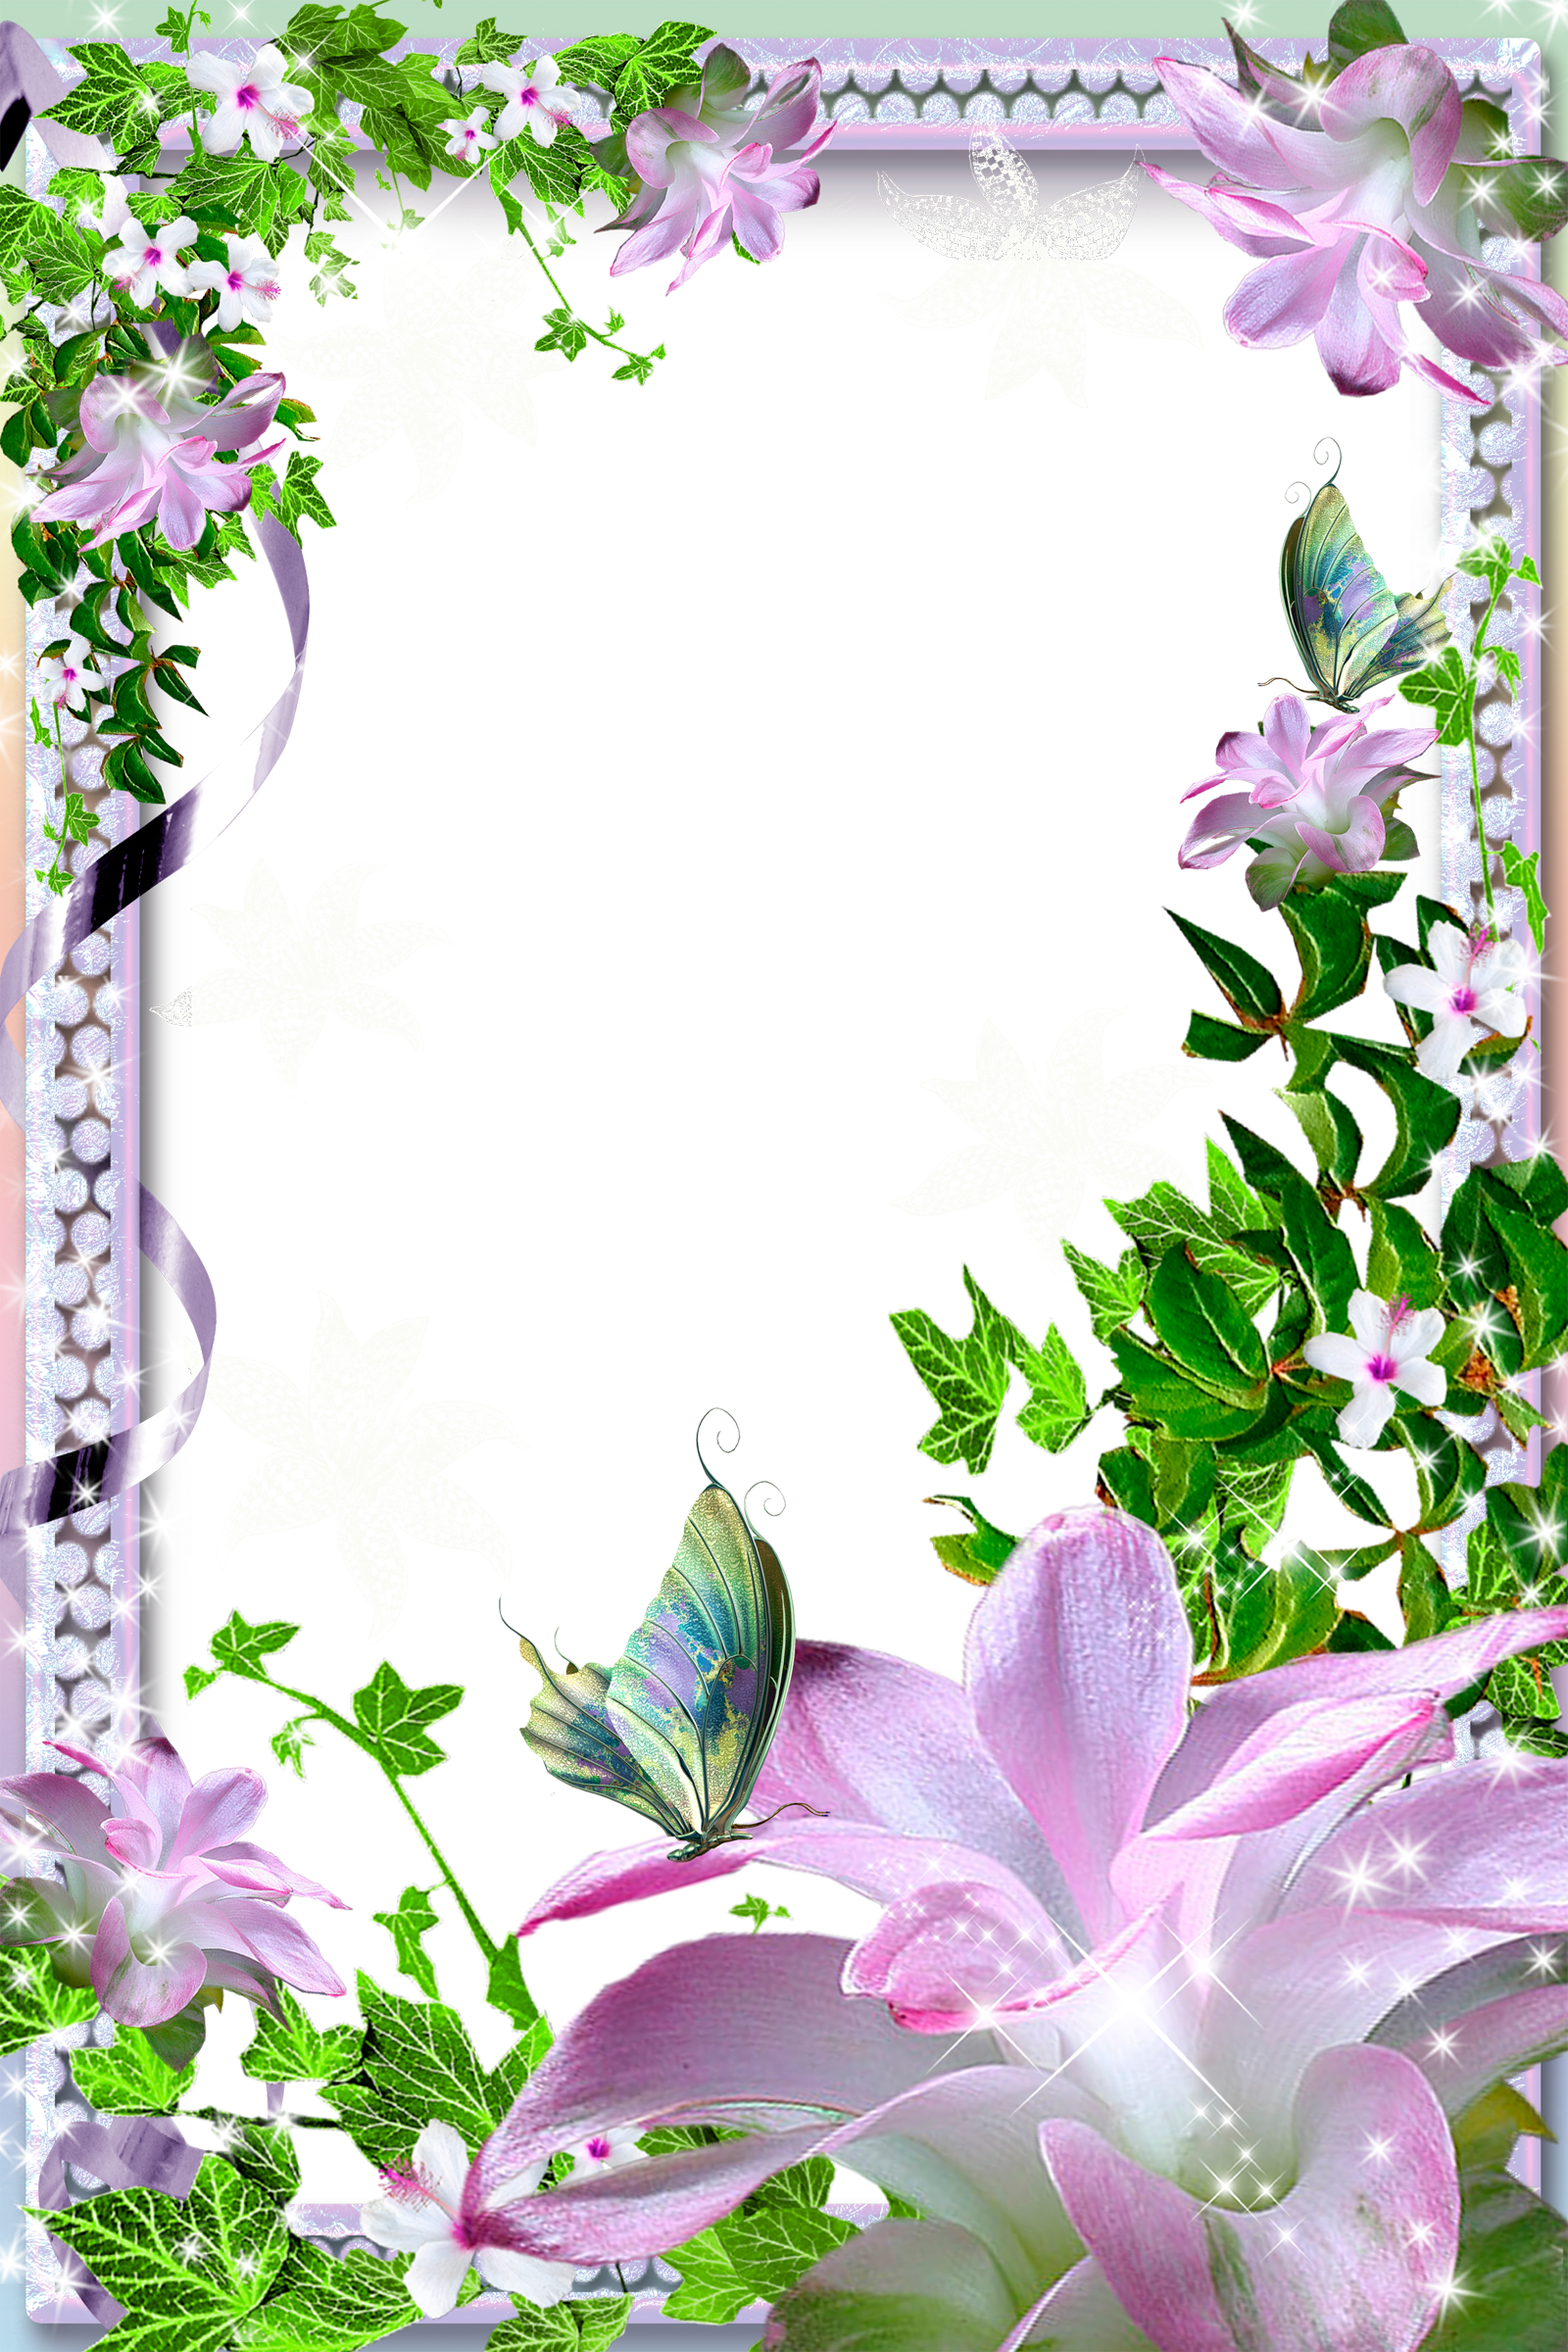 Transparent PNG Photo Frame with Pink Lilies Flower